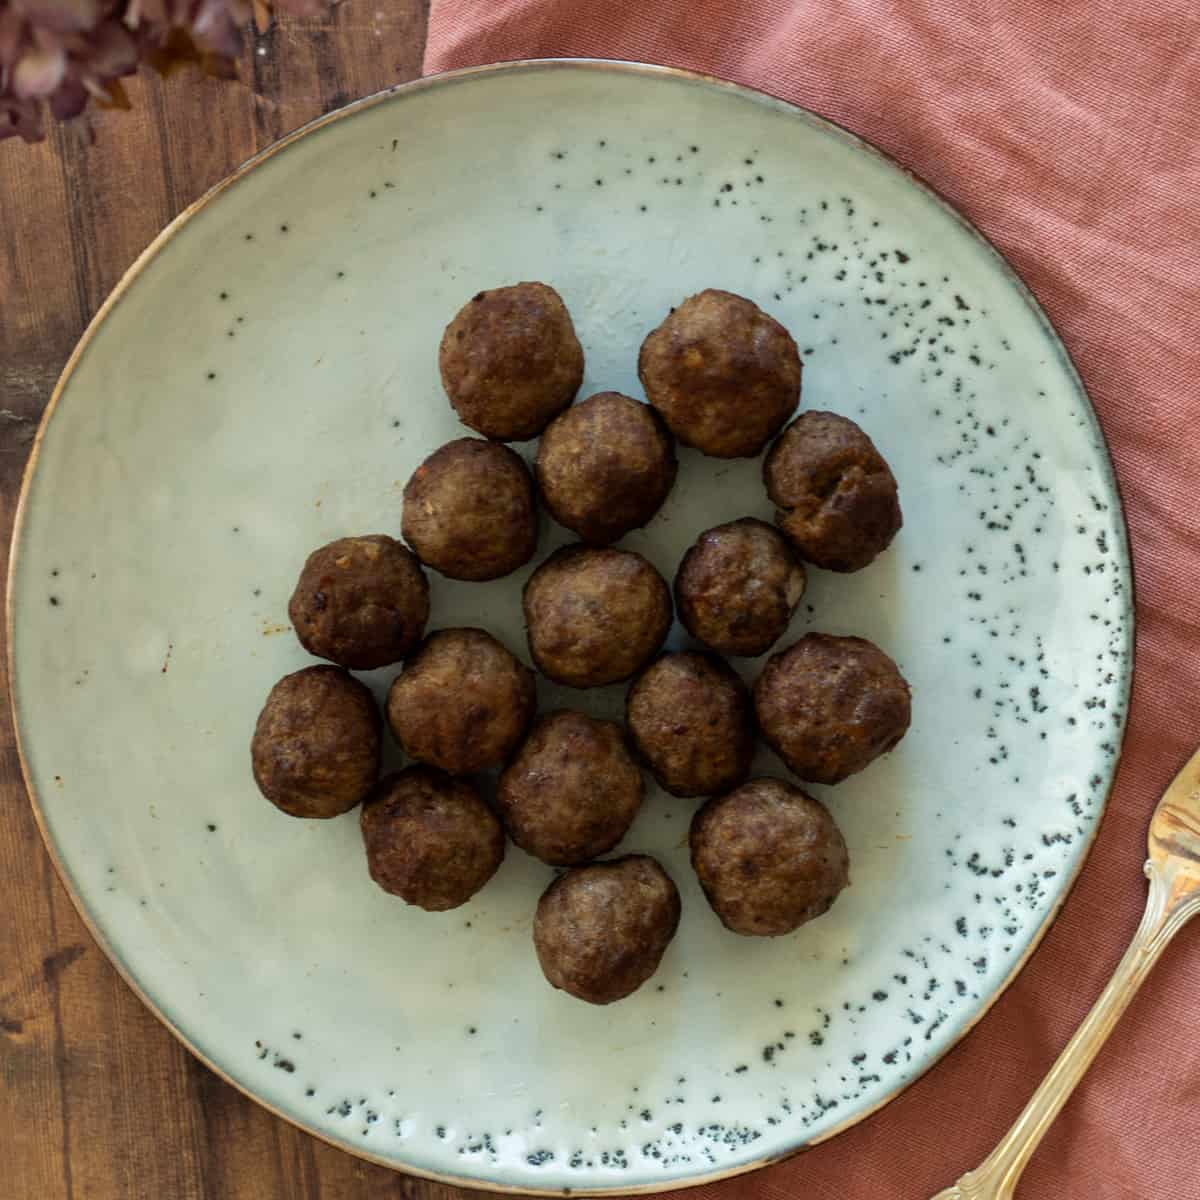 frozen meatballs cooked in air fryer on a blue plate